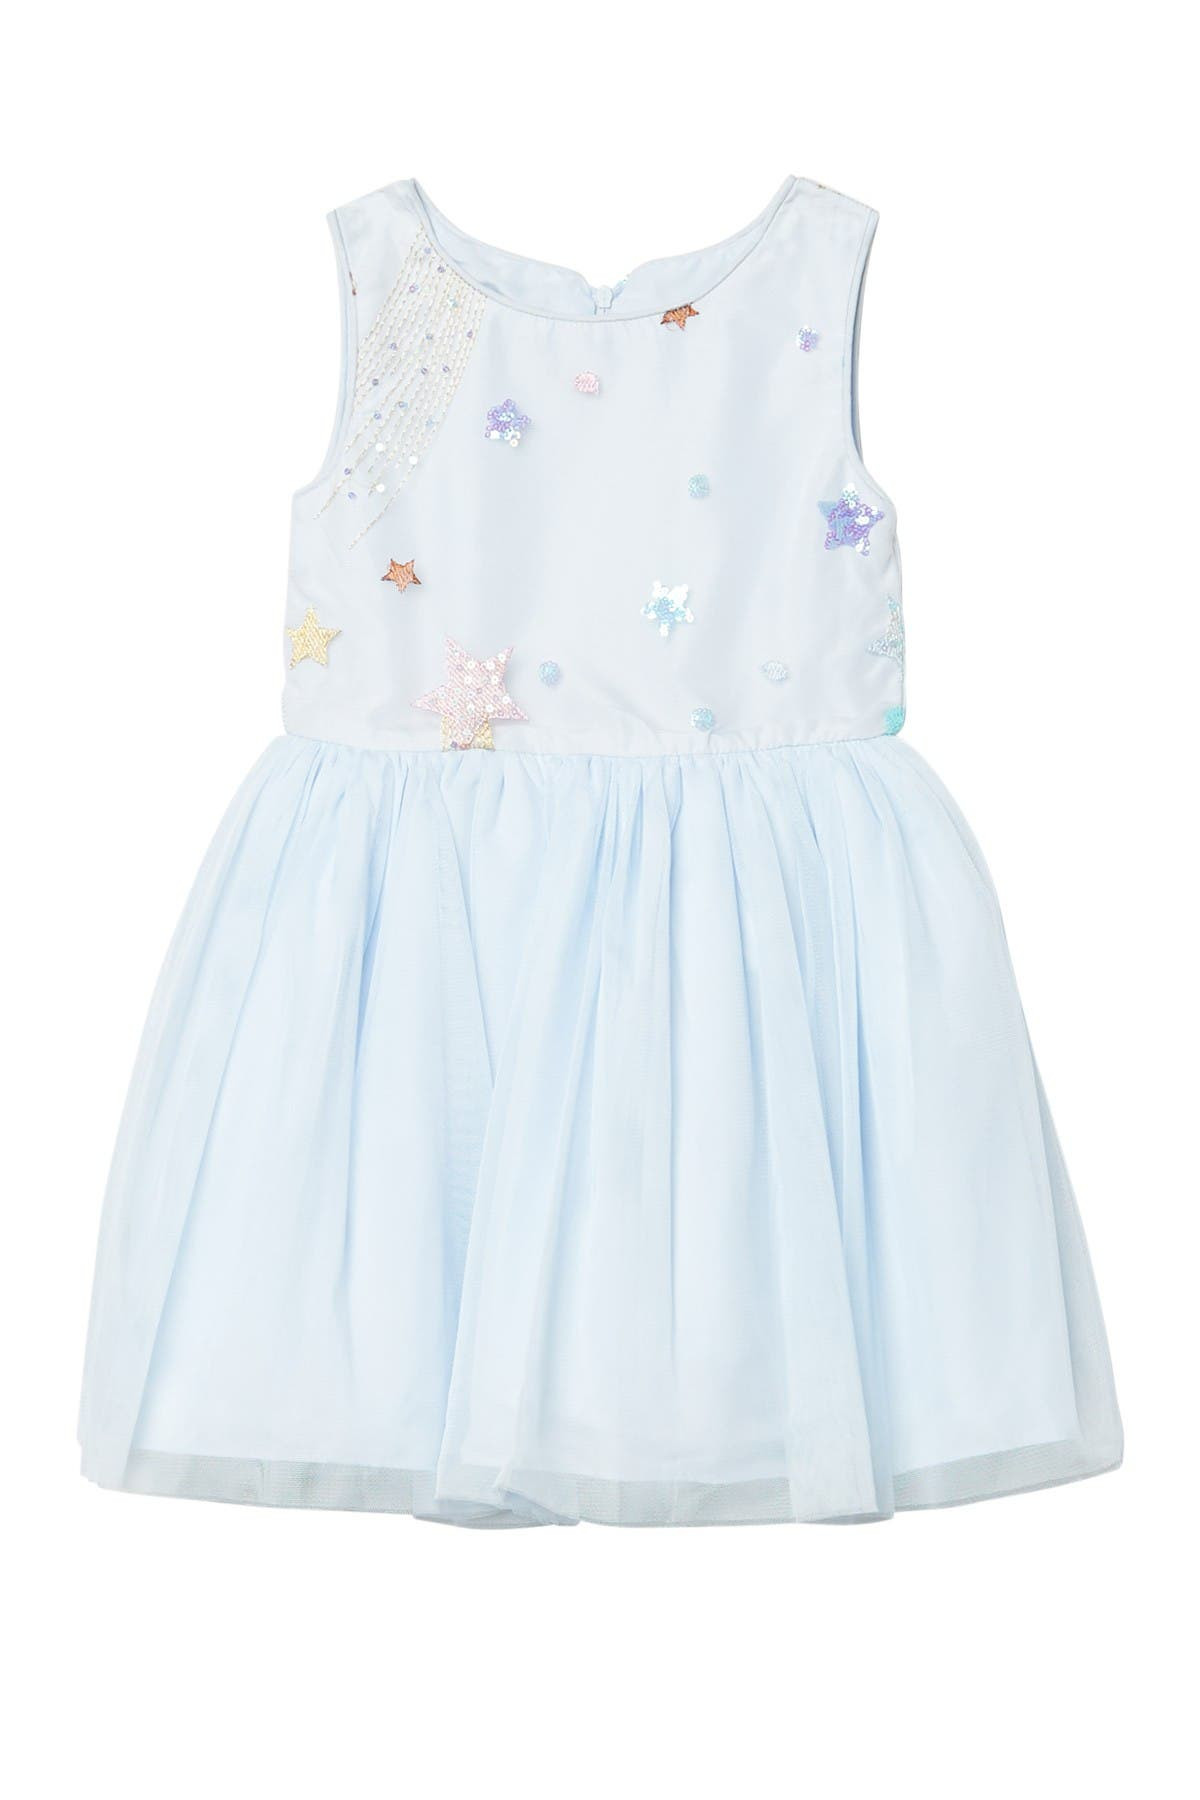 Image of Pastourelle by Pippa and Julie Shooting Star Sequin Tutu Dress